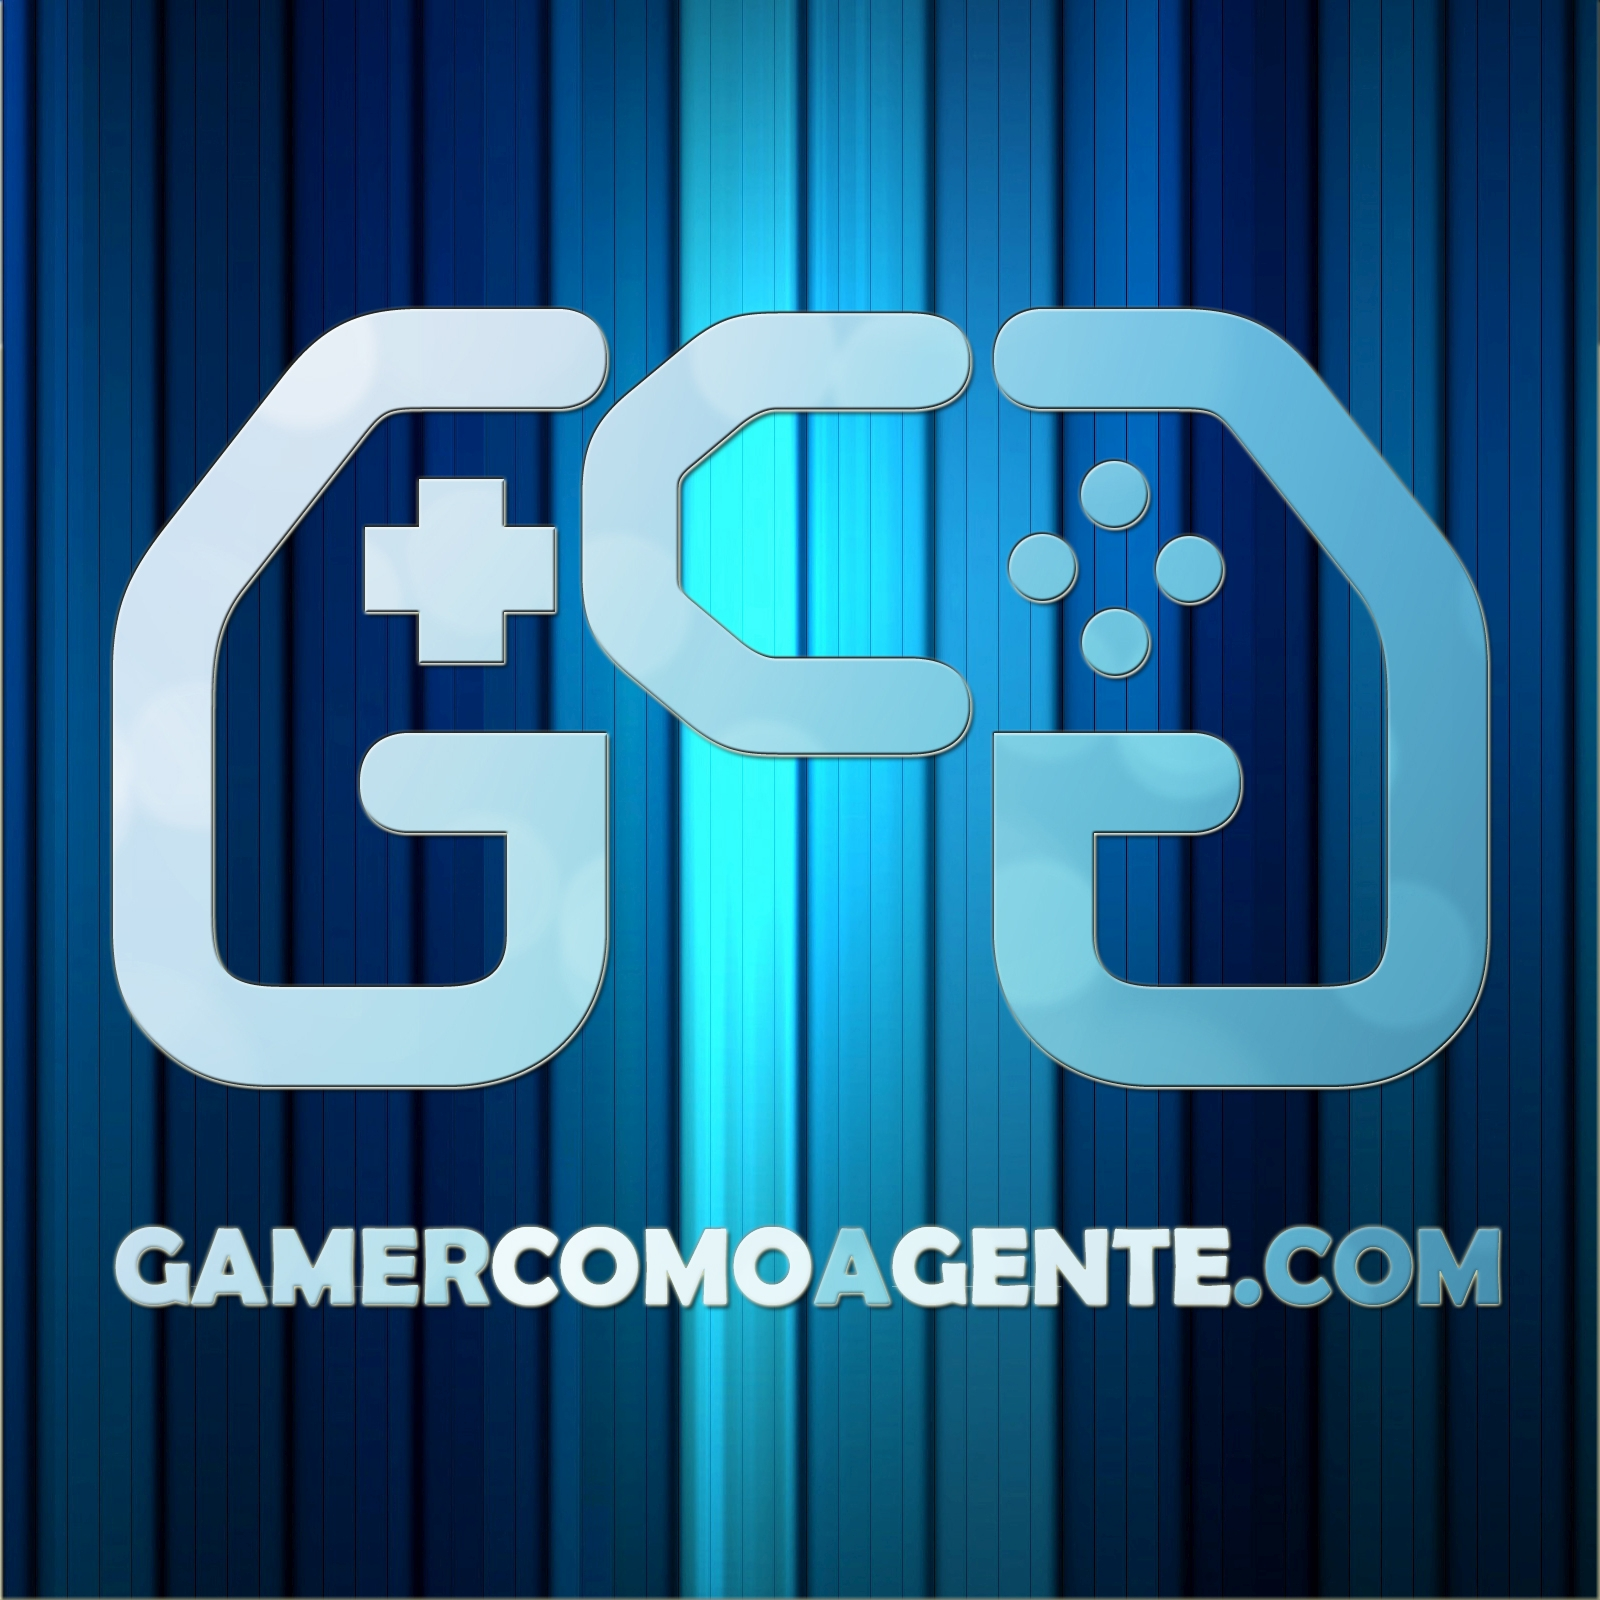 Gamer Como A Gente » Podcasts